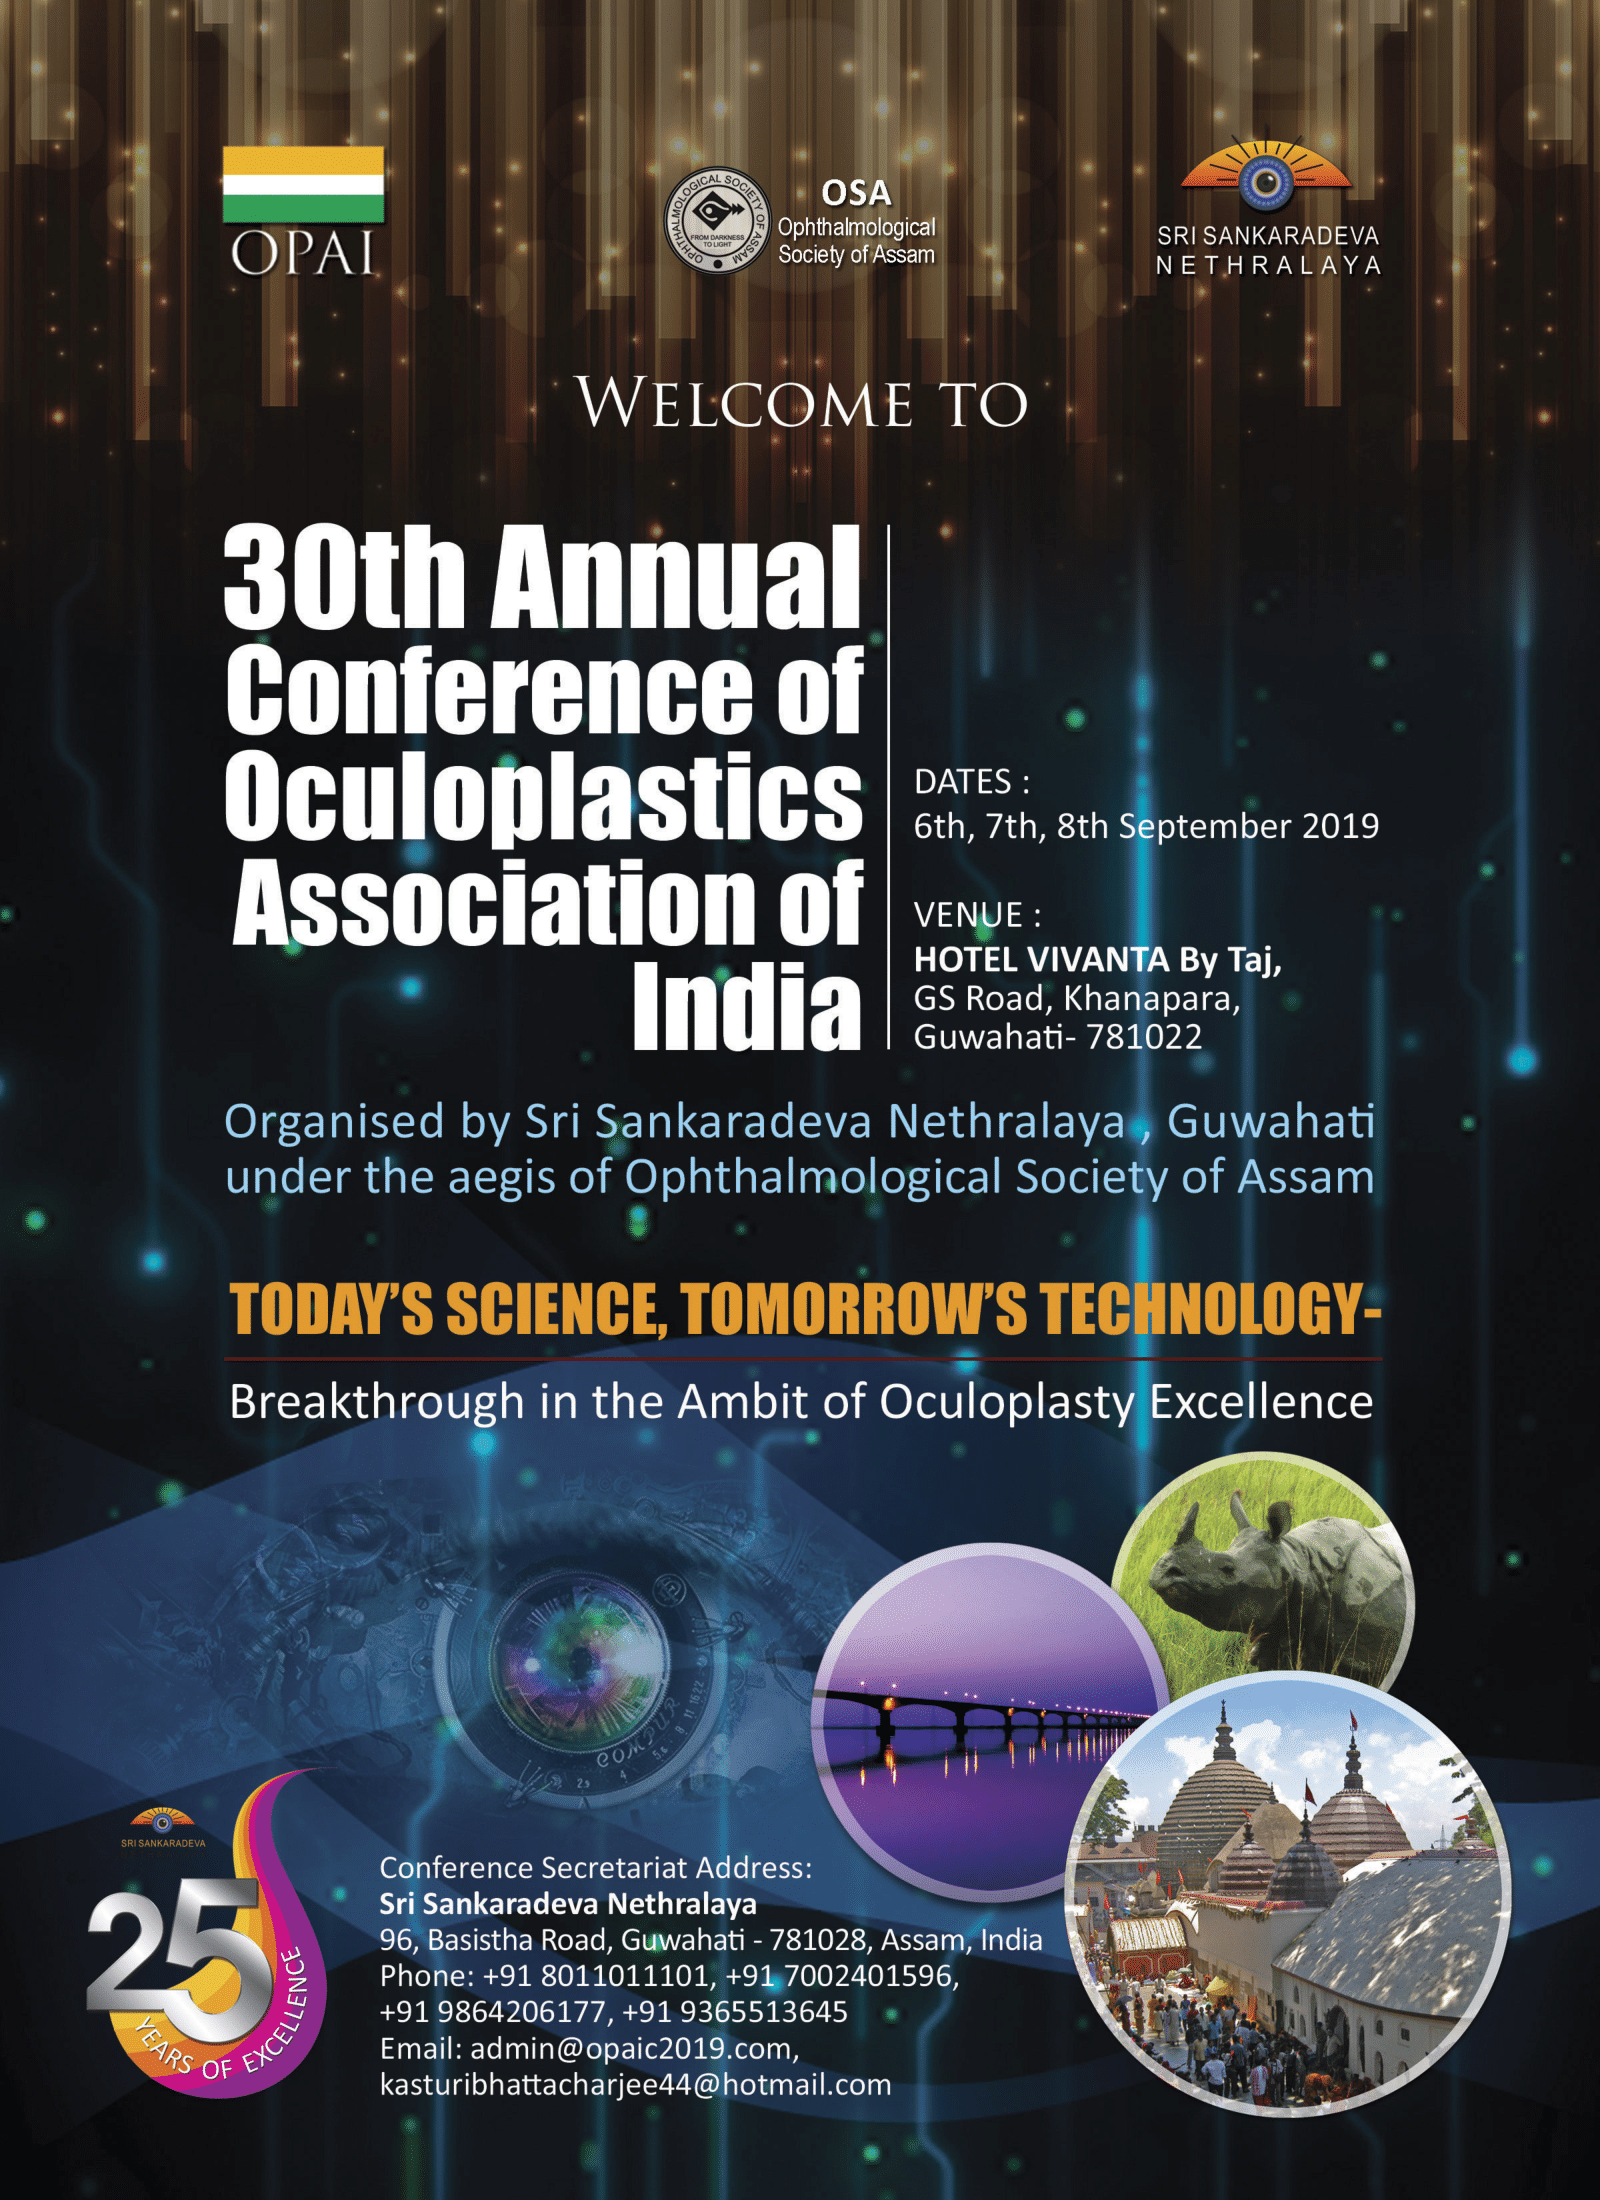 Asia Pacific Society Of Ophthalmic Plastic & Reconstructive